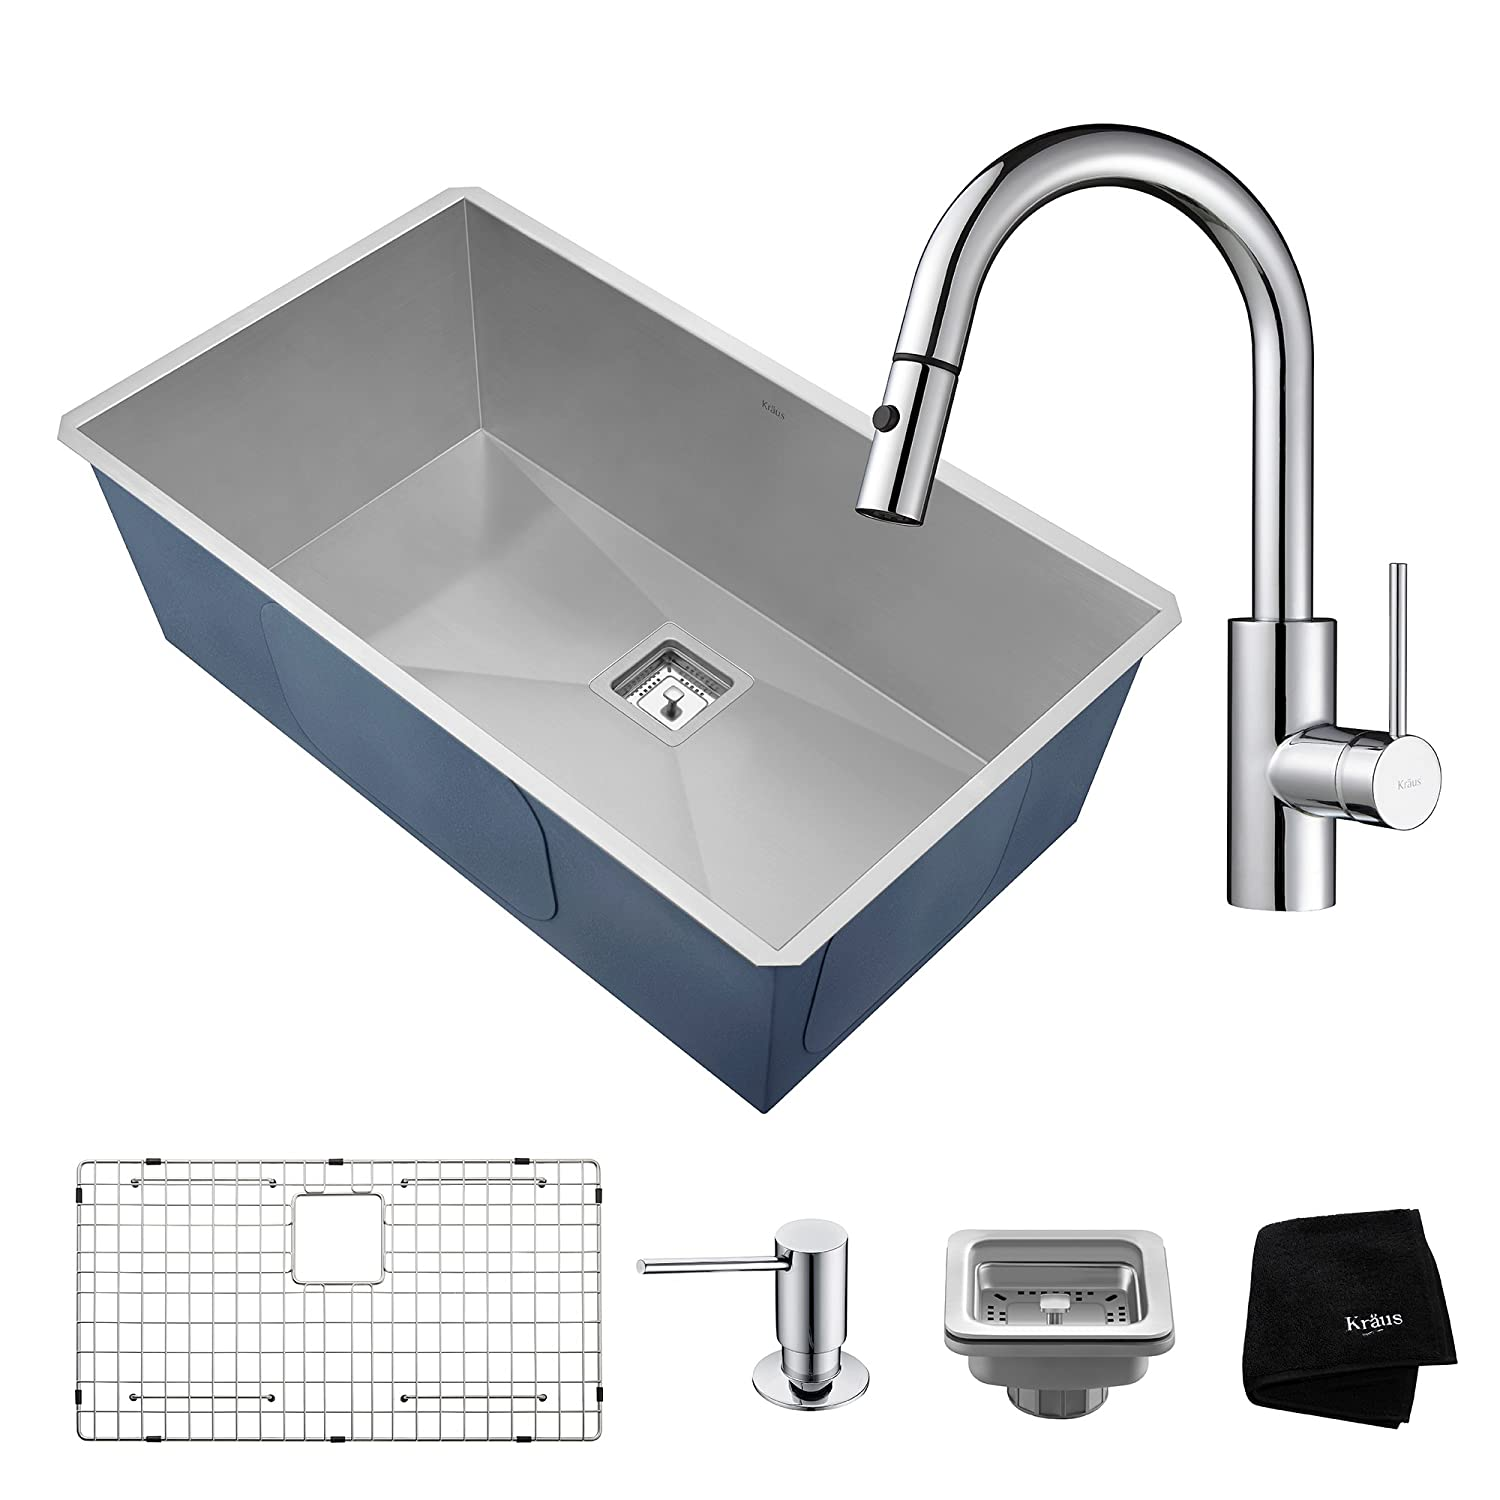 Kraus KHU32-2620-41CH 31 /½ Inch Combo with Pax Zero-Radius Handmade Undermount Bowl 16 Gauge Stainless Steel Sink and Oletto Single Handle Pull Down Kitchen Faucet with Soap Dispenser in Chrome